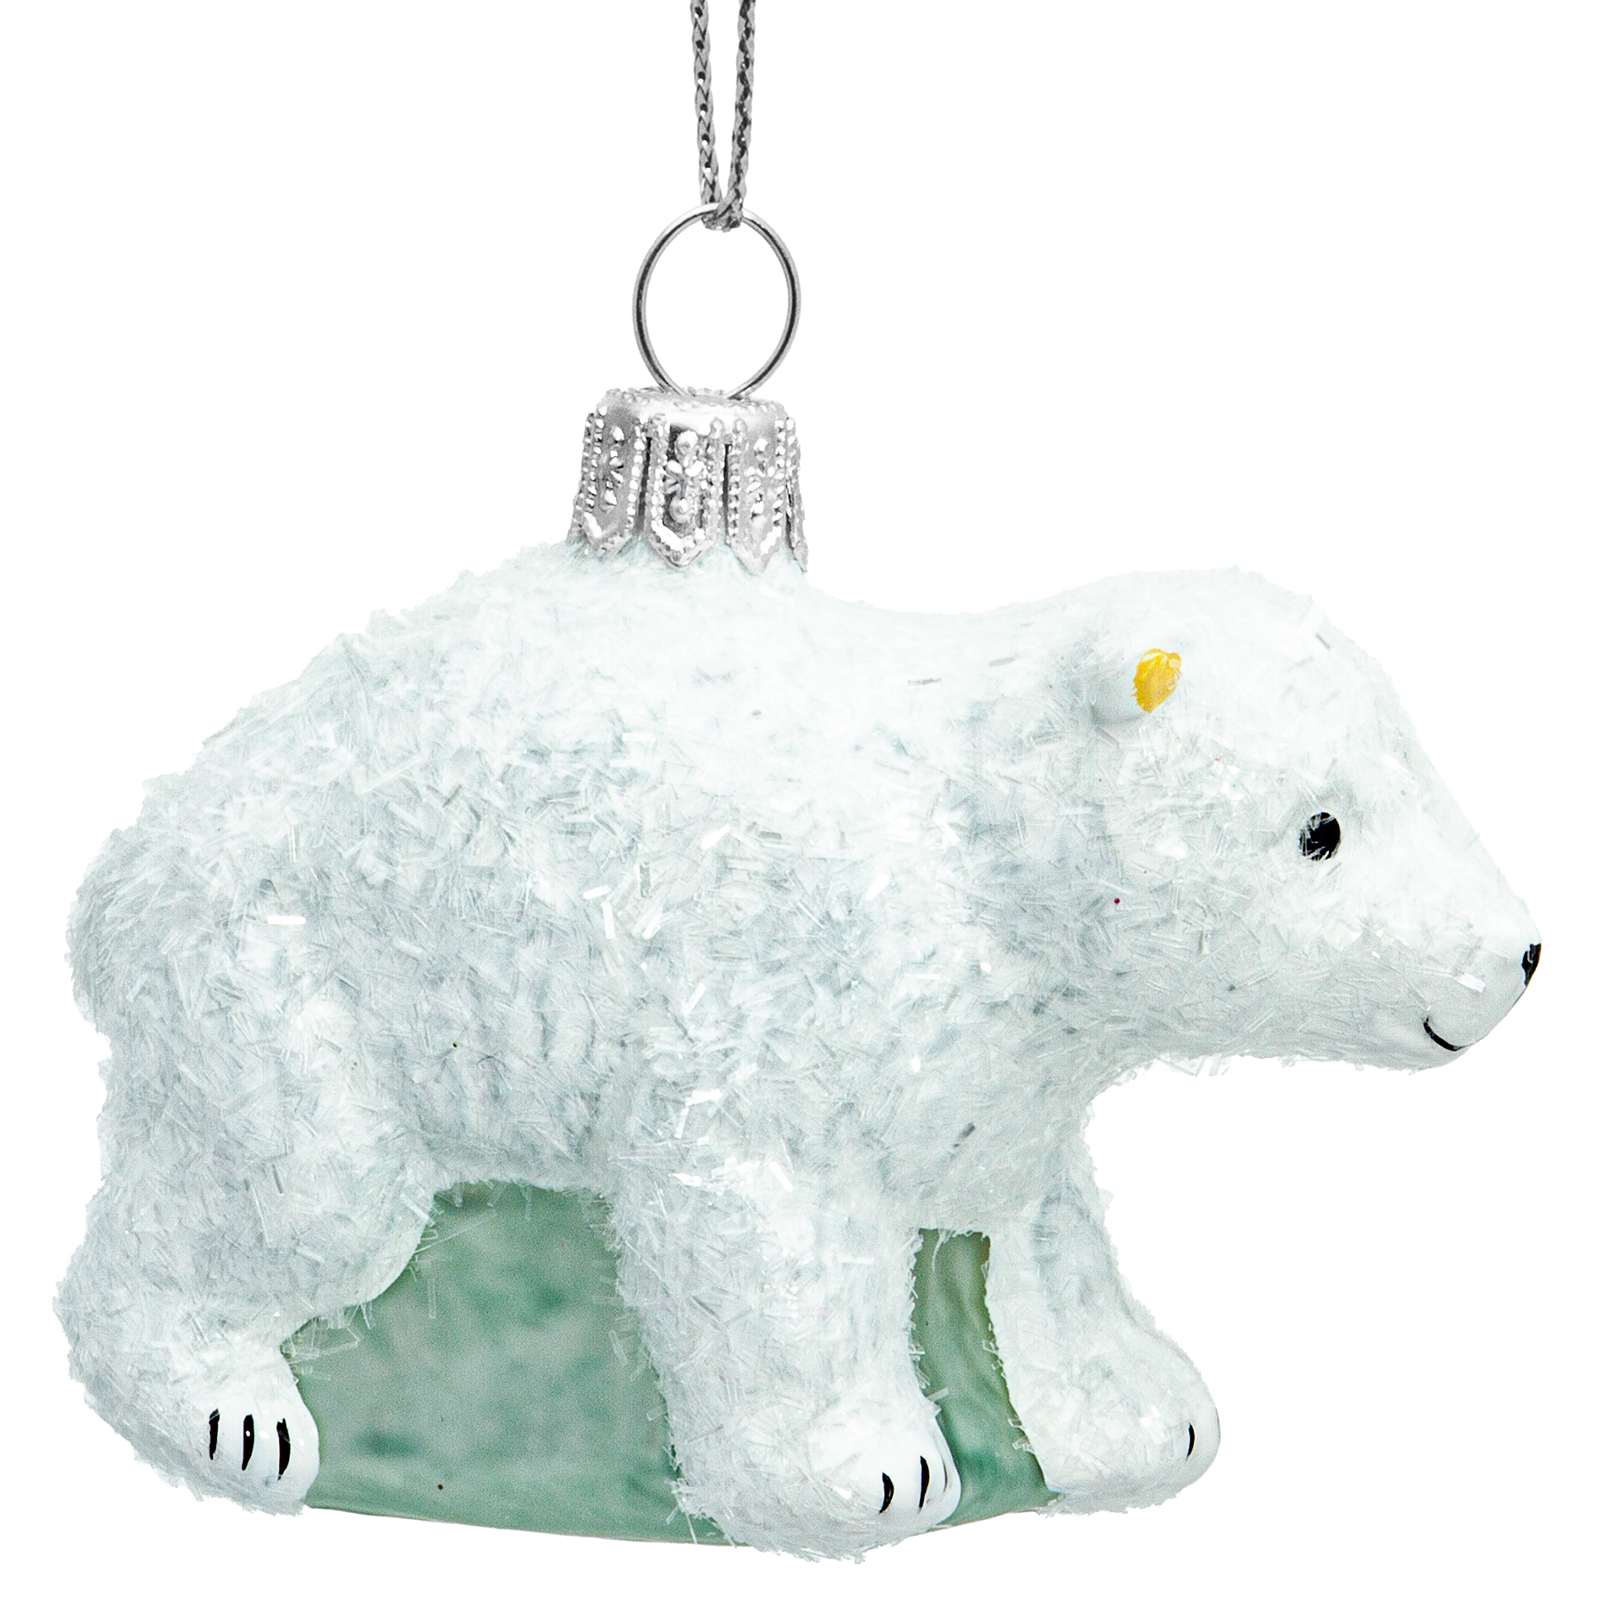 Sikora Bs708 Polar Bear Cub Christmas Tree Decoration Glass Figurine Ornament Bauble Exclusive Edition Sikora Christmas World